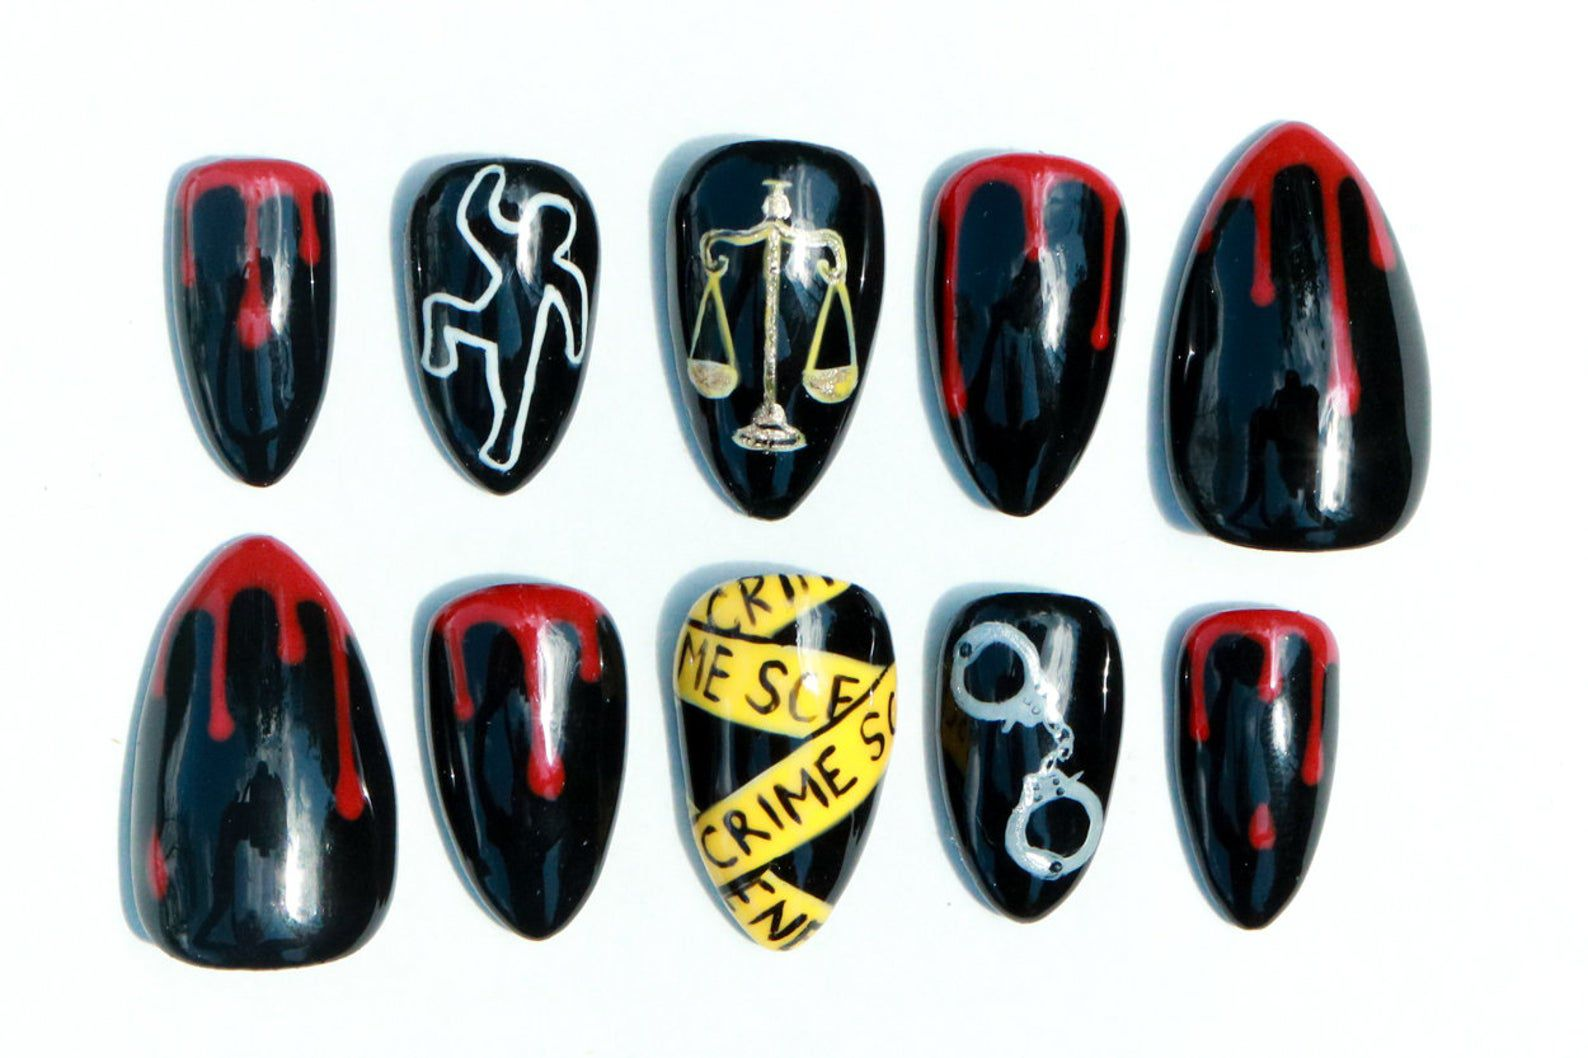 Image of crime nails, including crime scene tape, handcuffs, and blood.